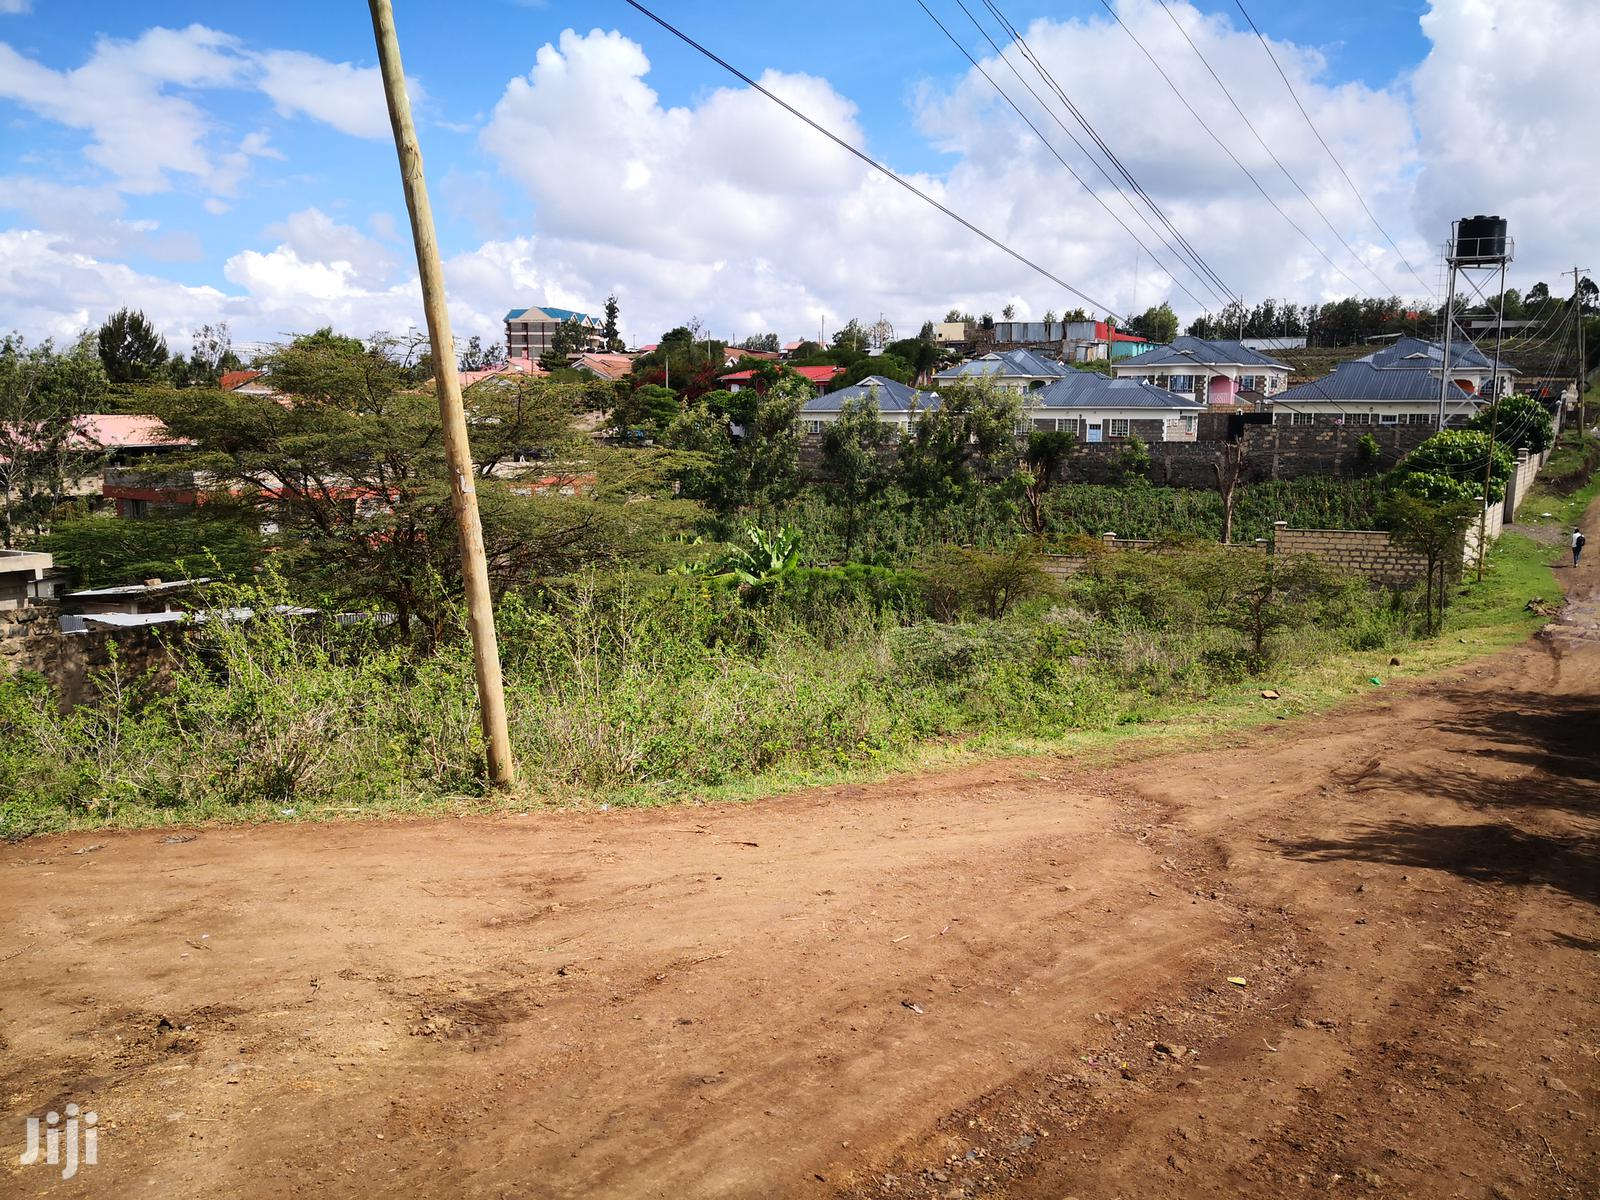 Archive: 4 Bedrooms Maisonatte For Sale In Rongai Kajiado County.